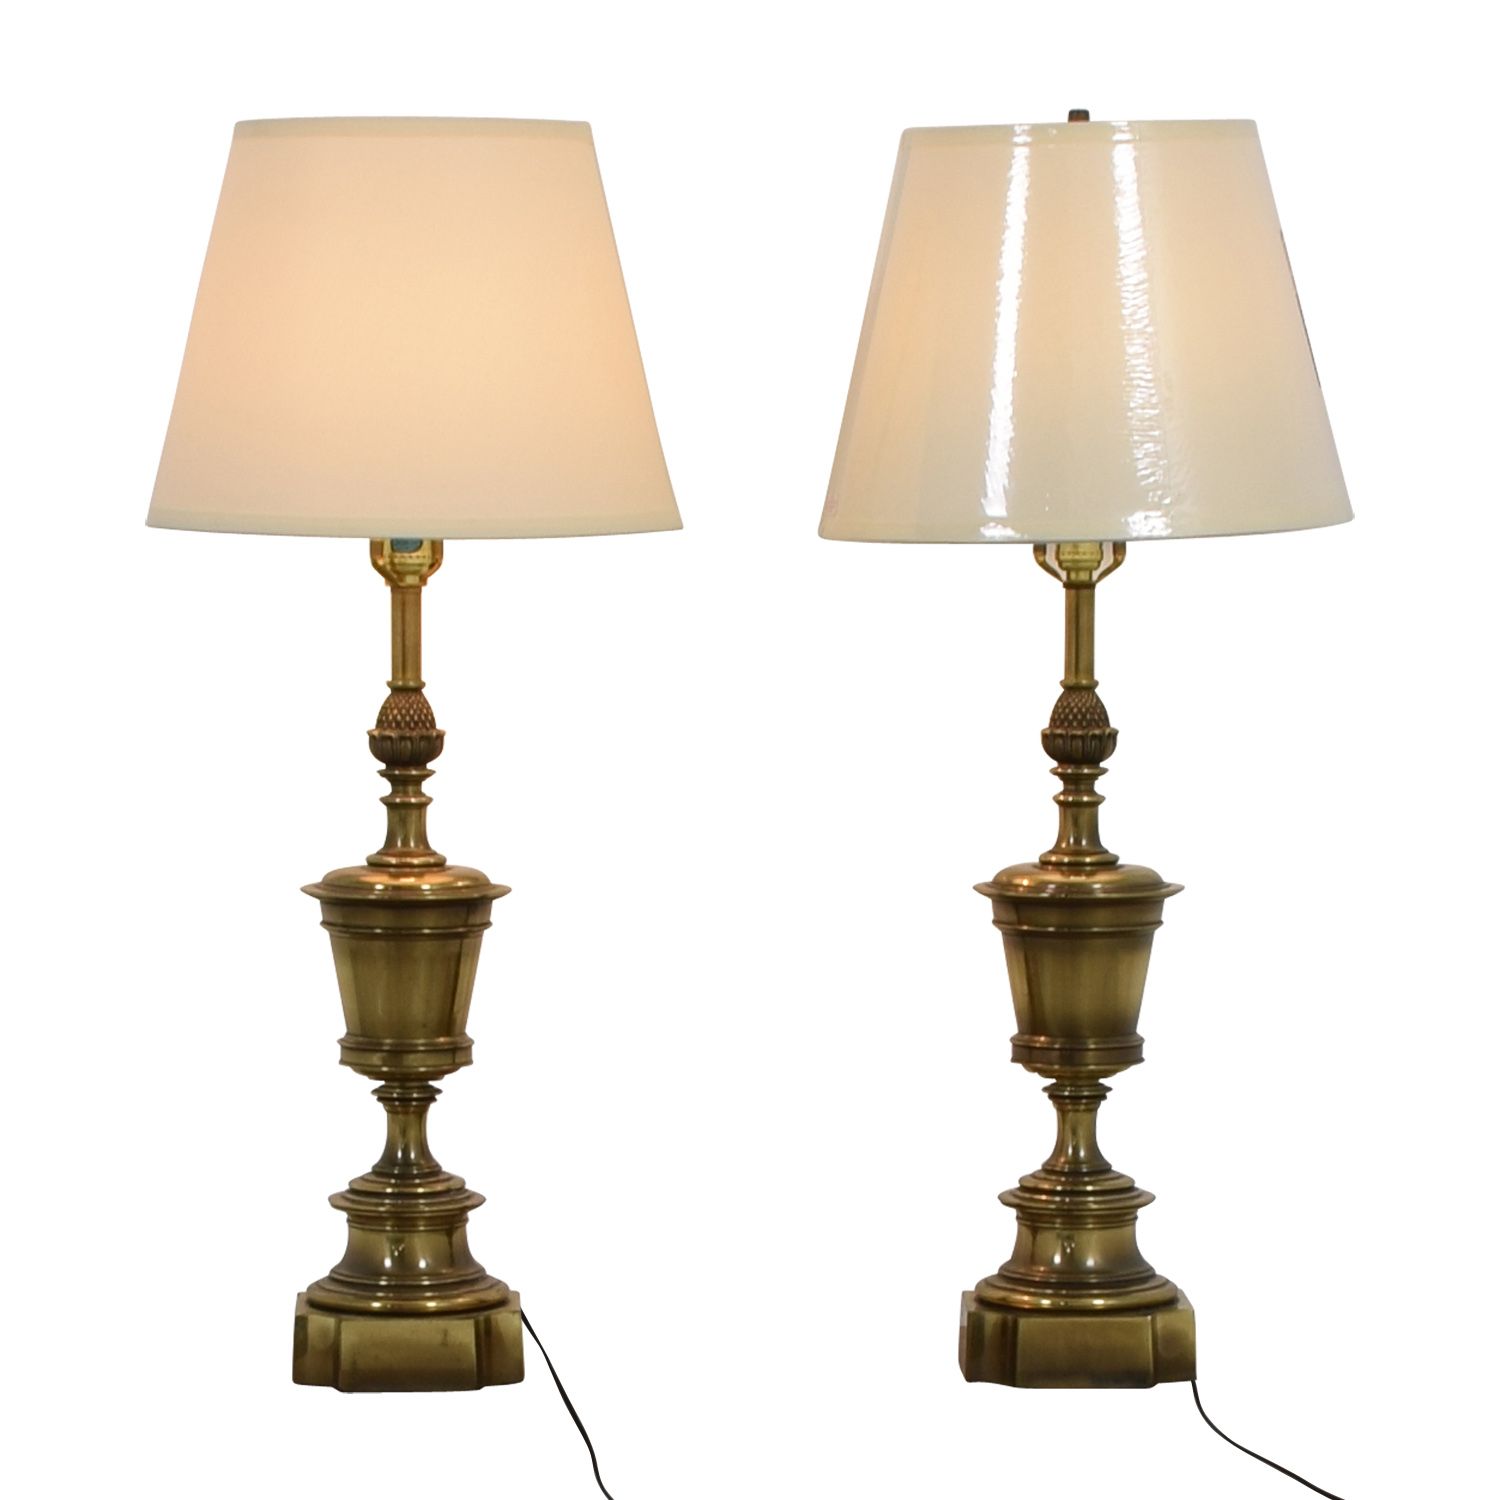 Gold Table Lamps used